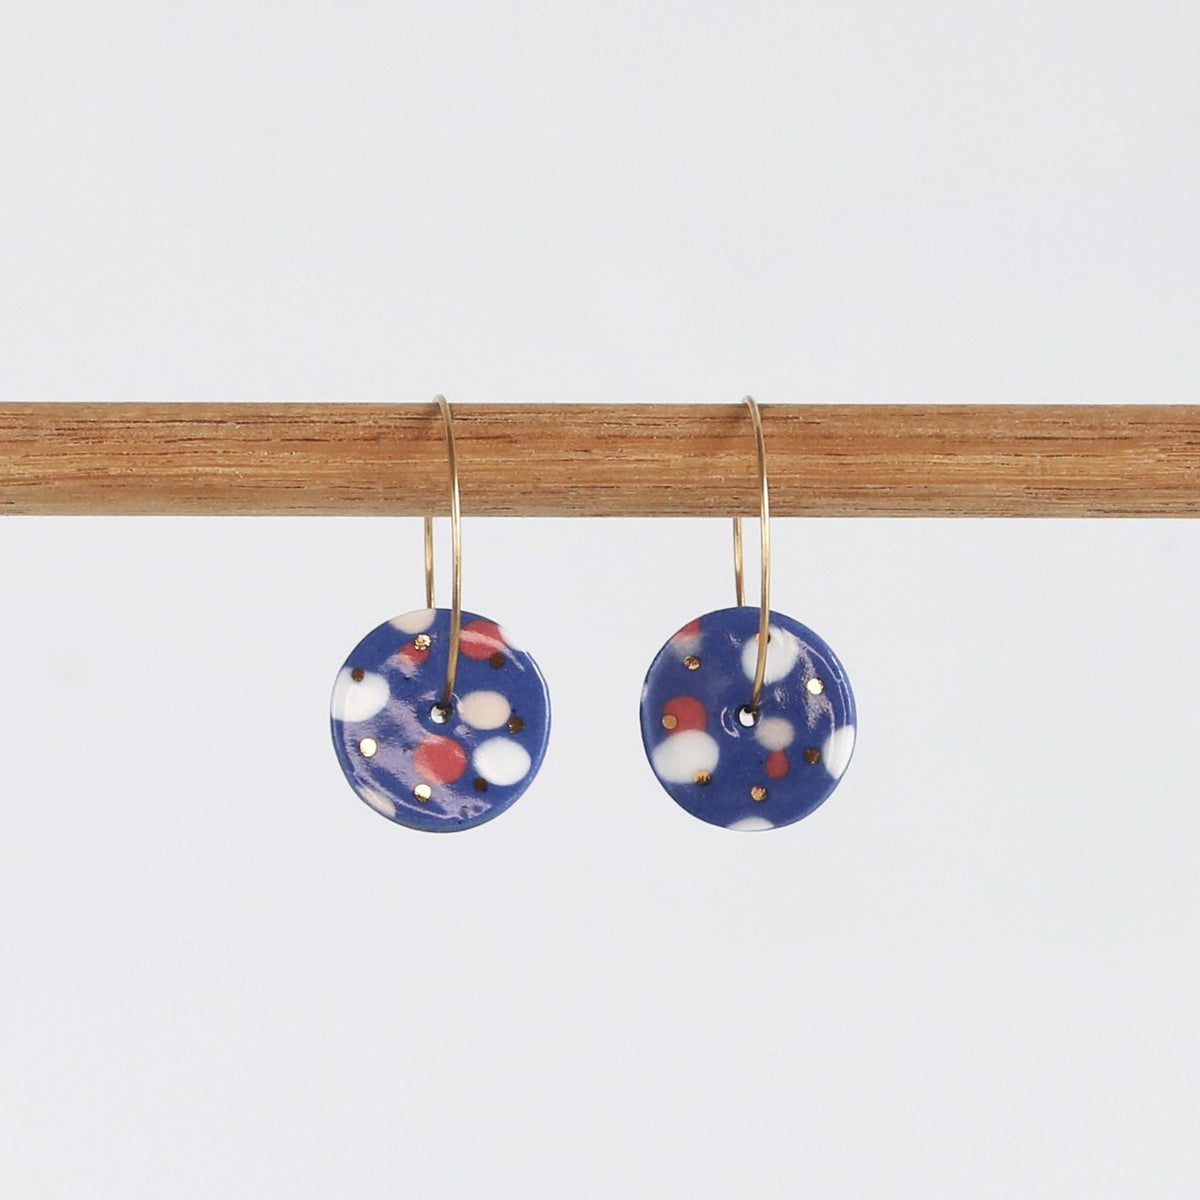 Donut earrings - Royal blue mix & gold dots